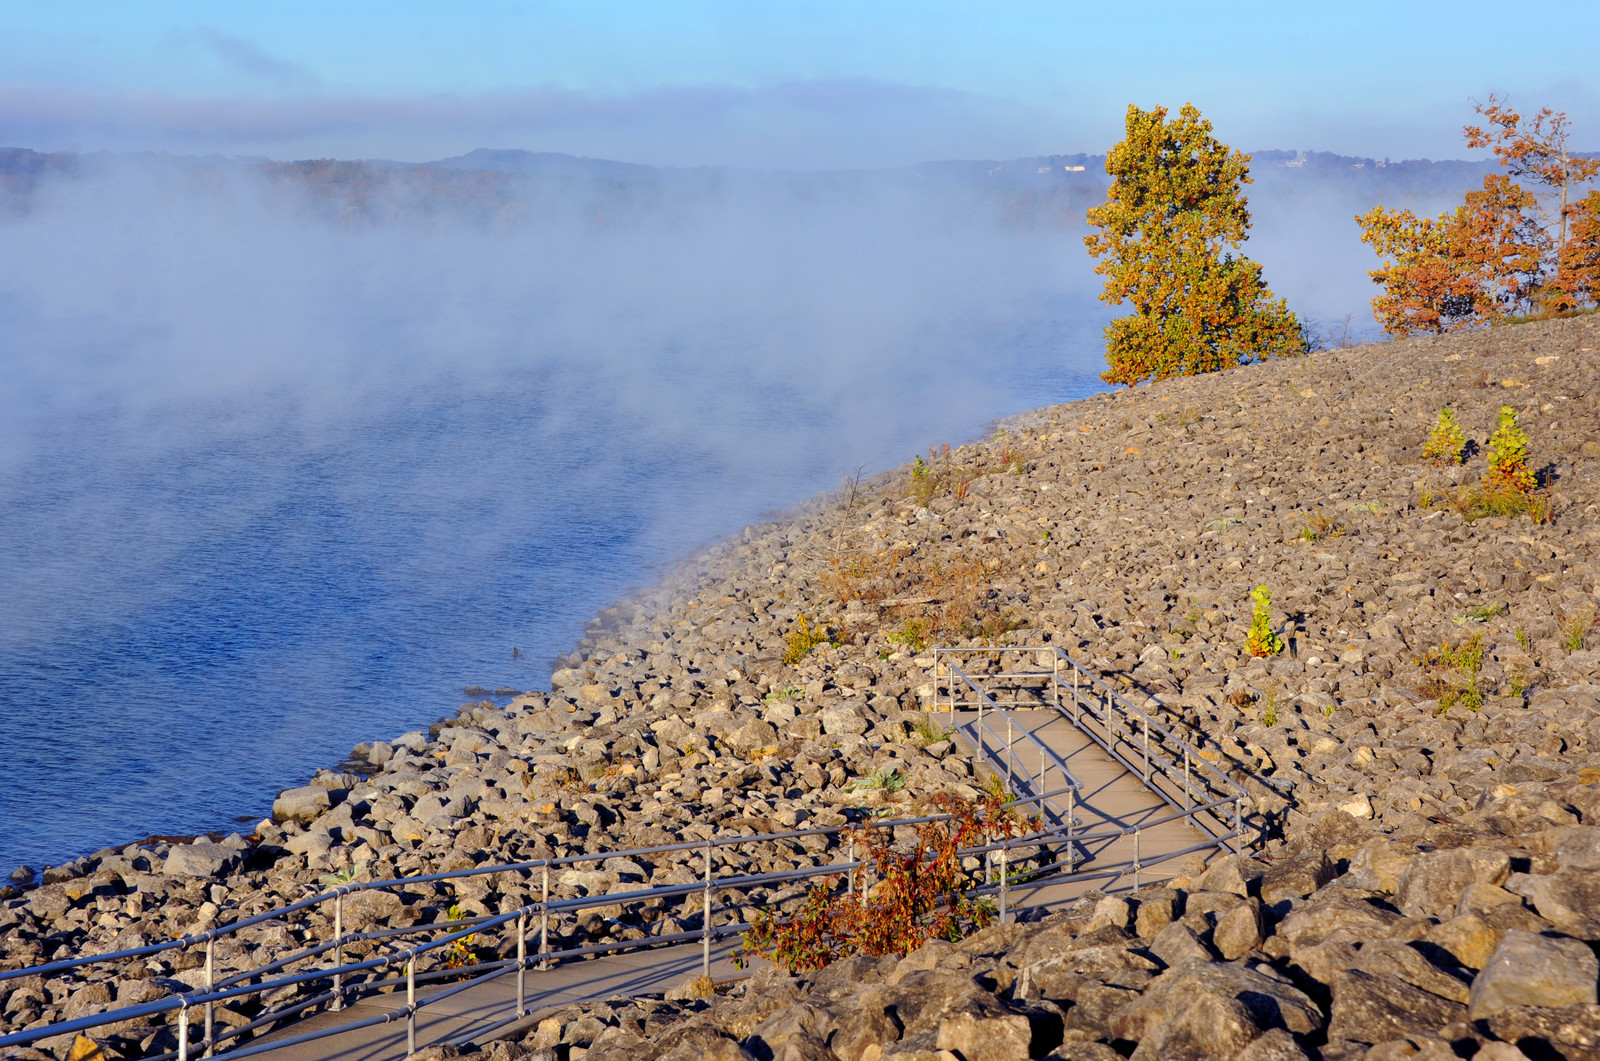 Peninsula observation loop with ramp and observation points to look at the scenic lake on table rock lake in Branson, Missouri, at early light with a light fog still hovering over the lake